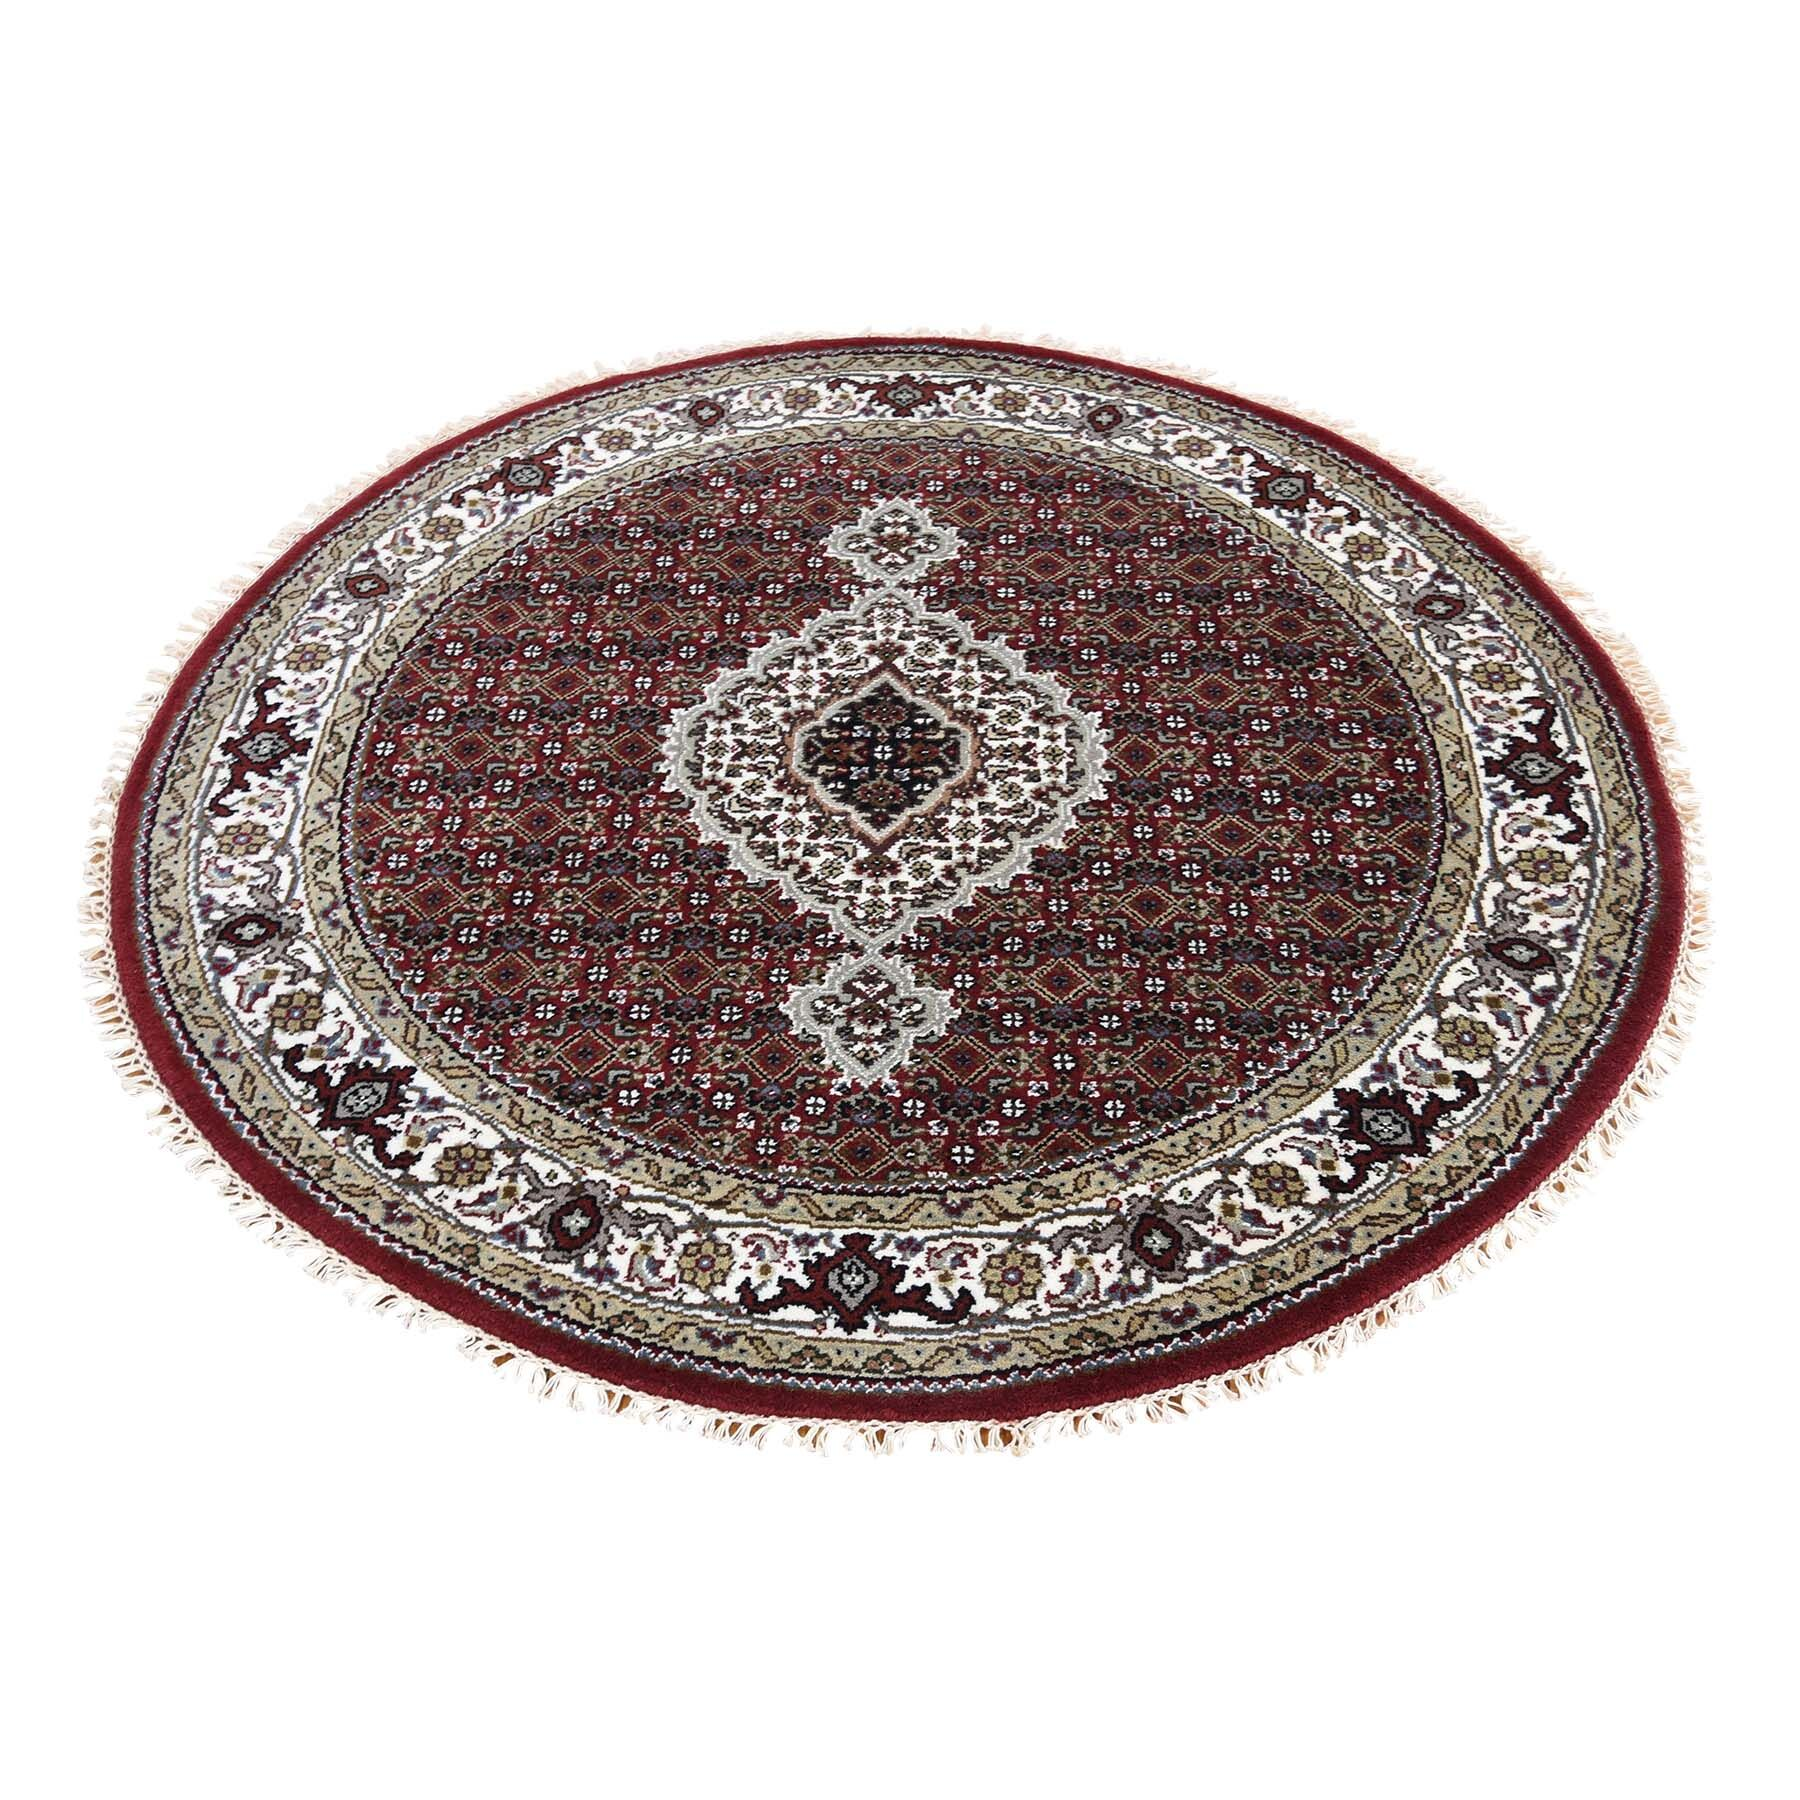 One-of-a-Kind Rudolph 250 Kpsi Mahi Hand-Knotted Tibetan Red Area Rug